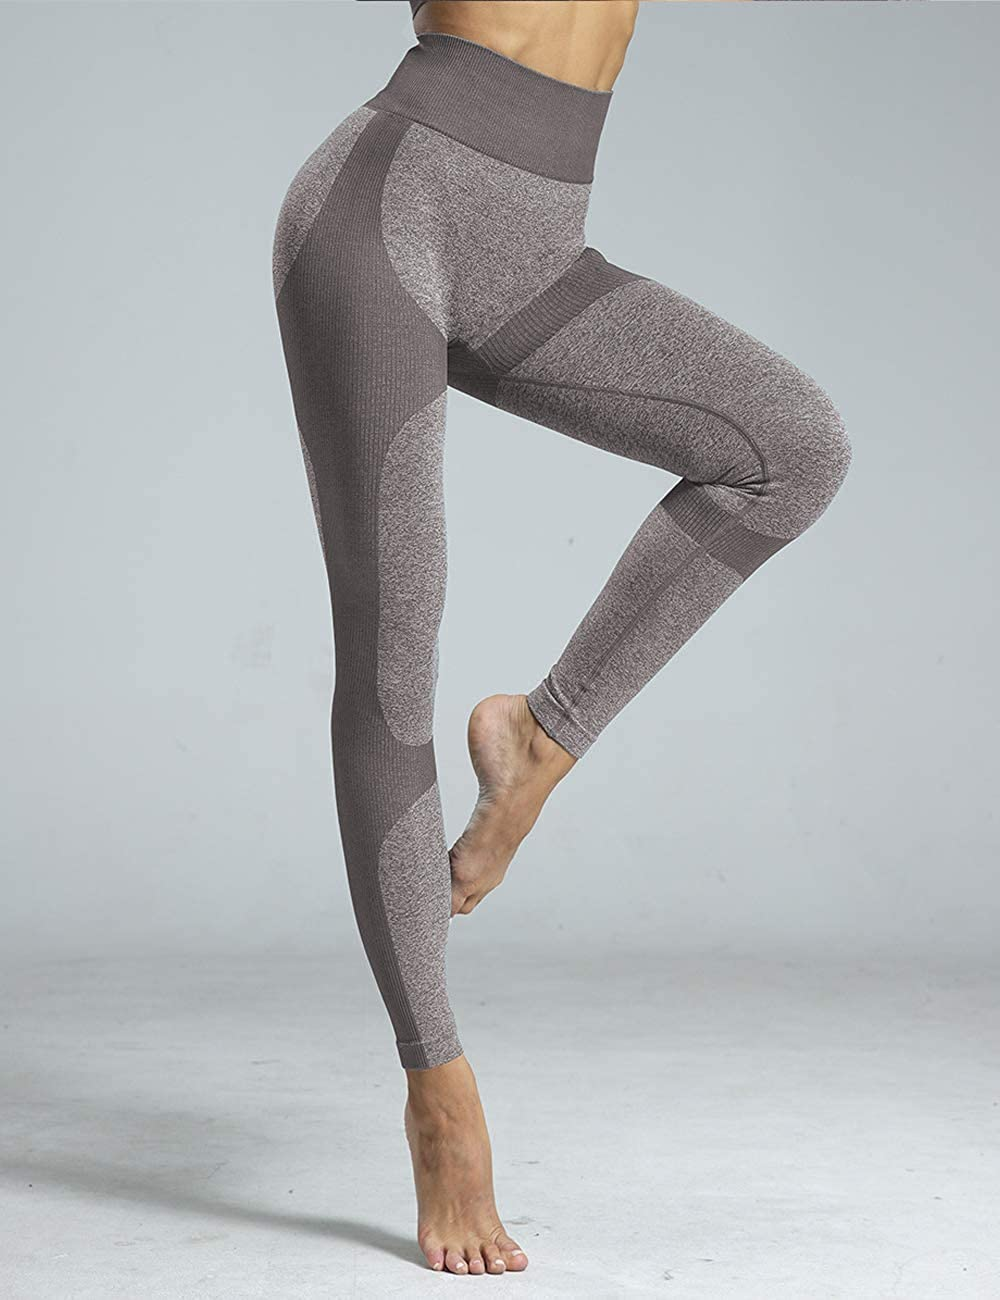 Workout Leggings for Women Seamless Knit with Wide Waistband and 4-Way Stretch for Butt Lift and Tummy Control